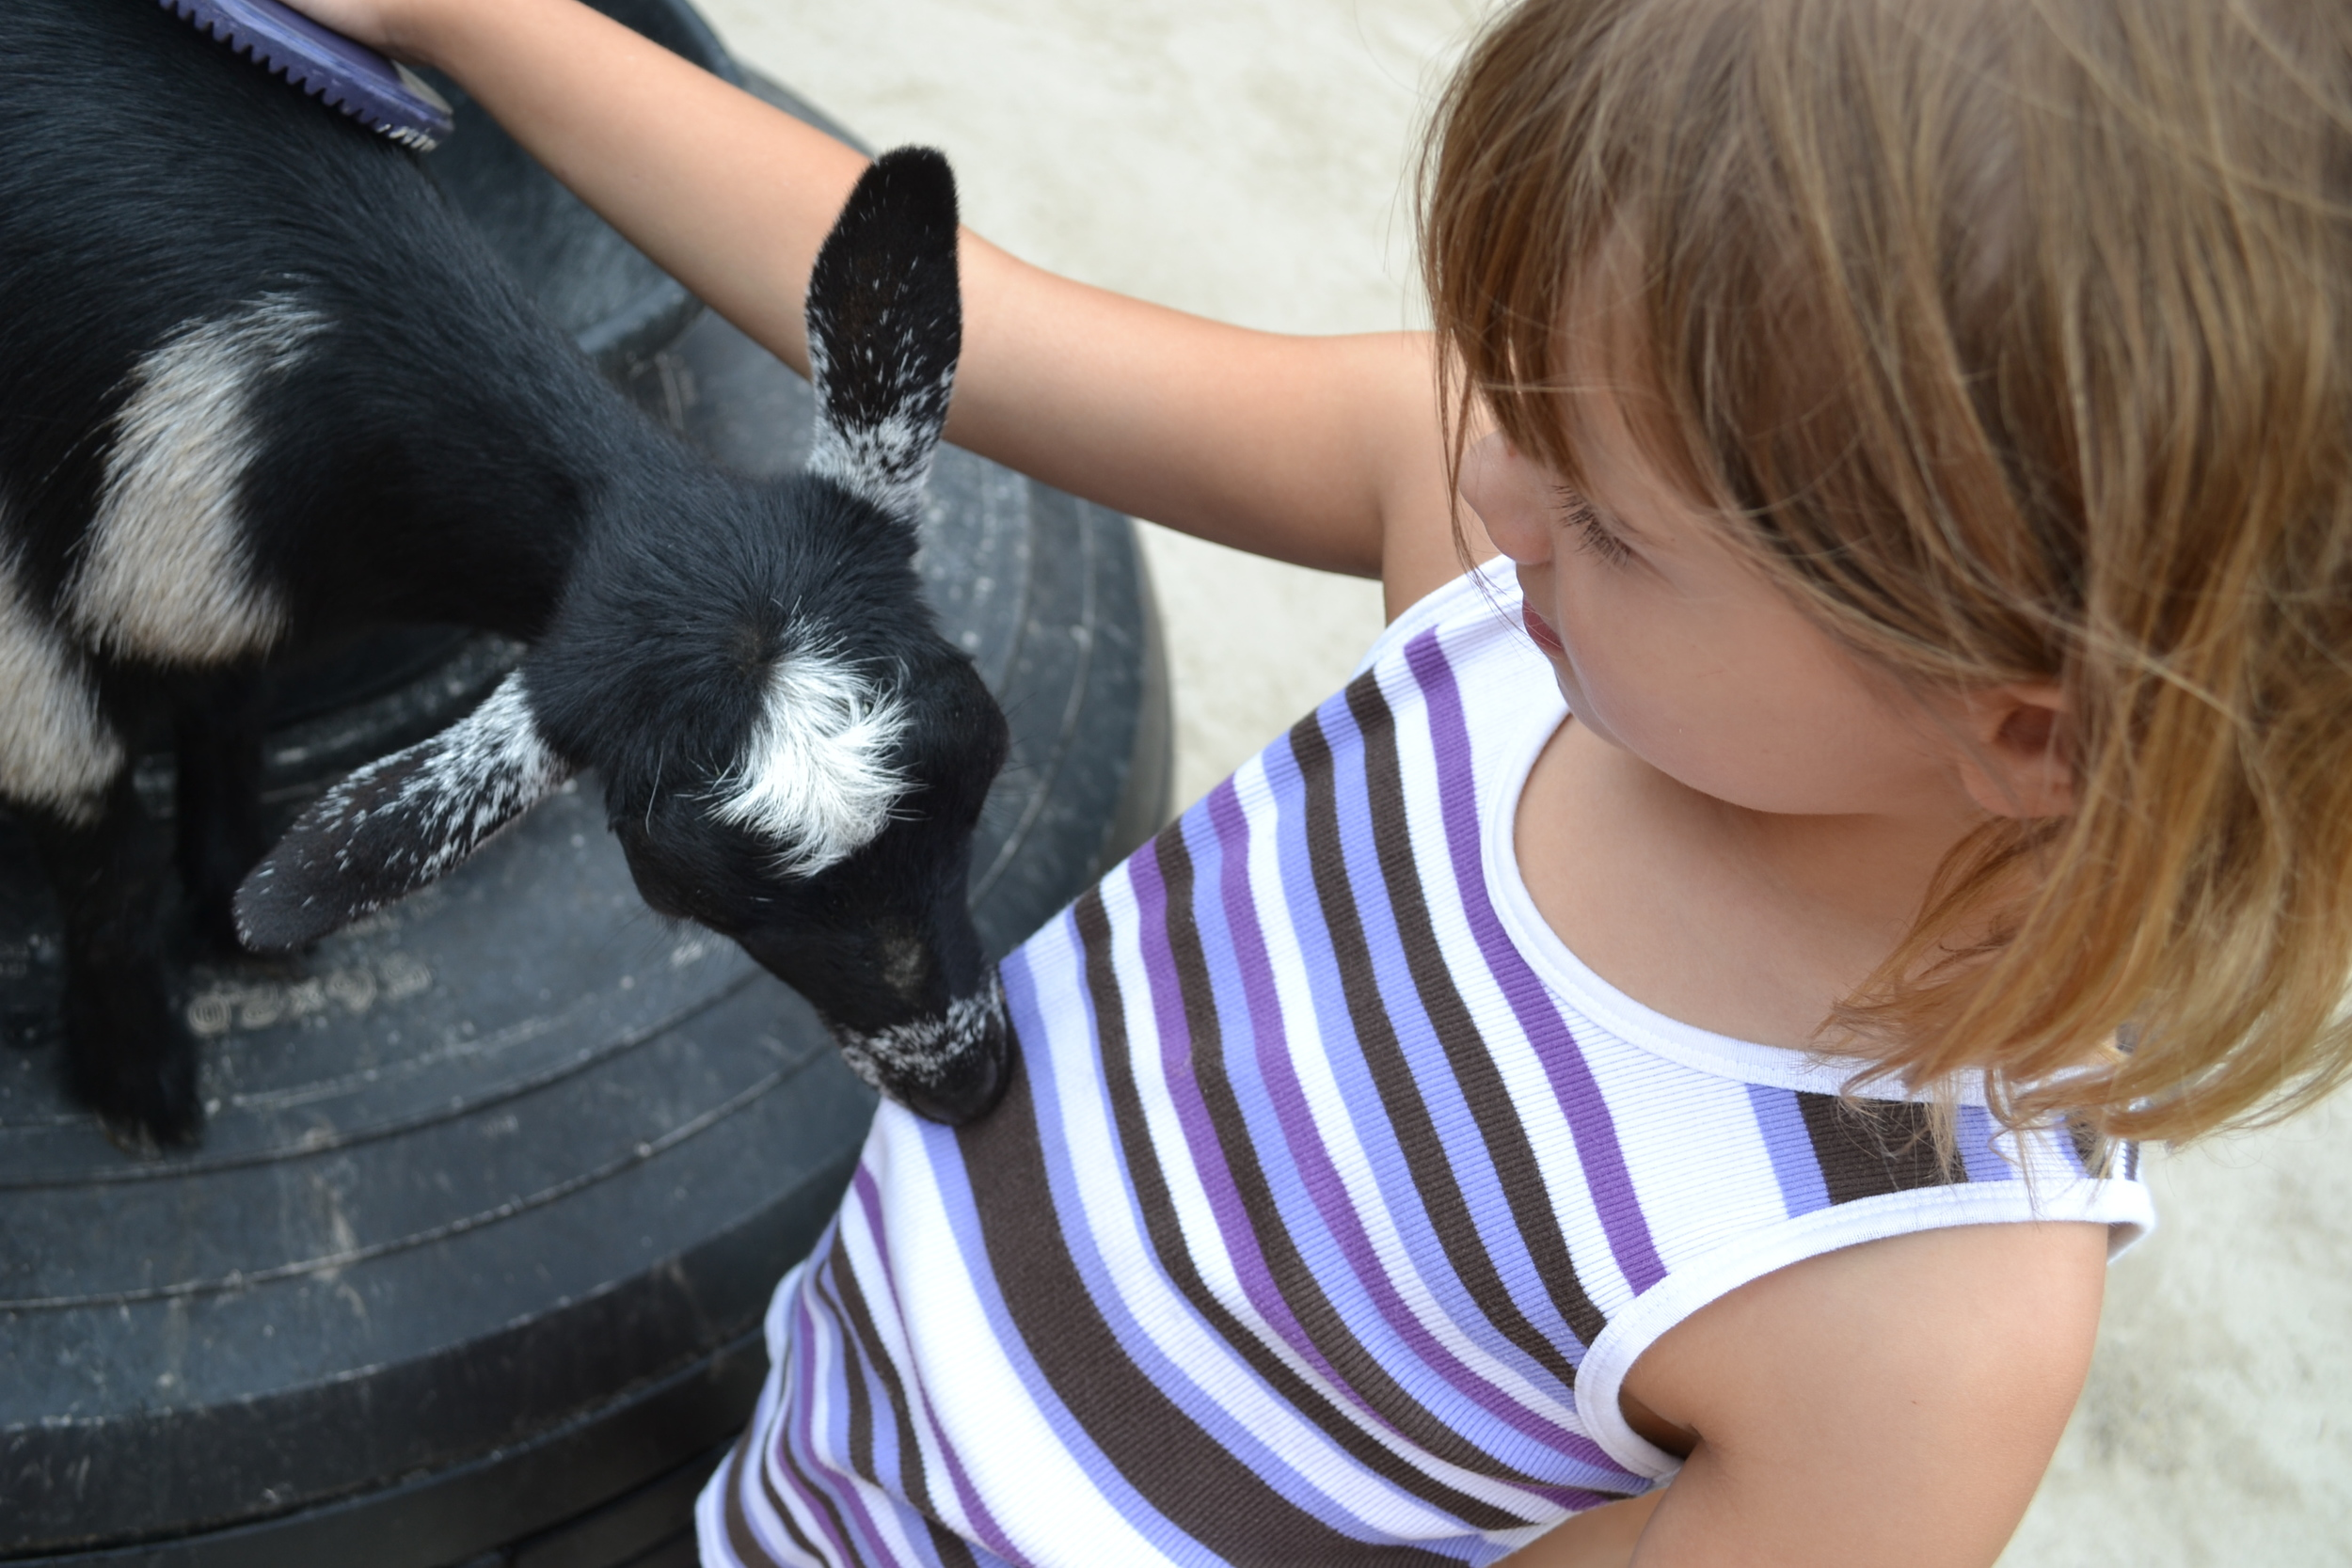 A picture of a goat nibbling a girl's shirt